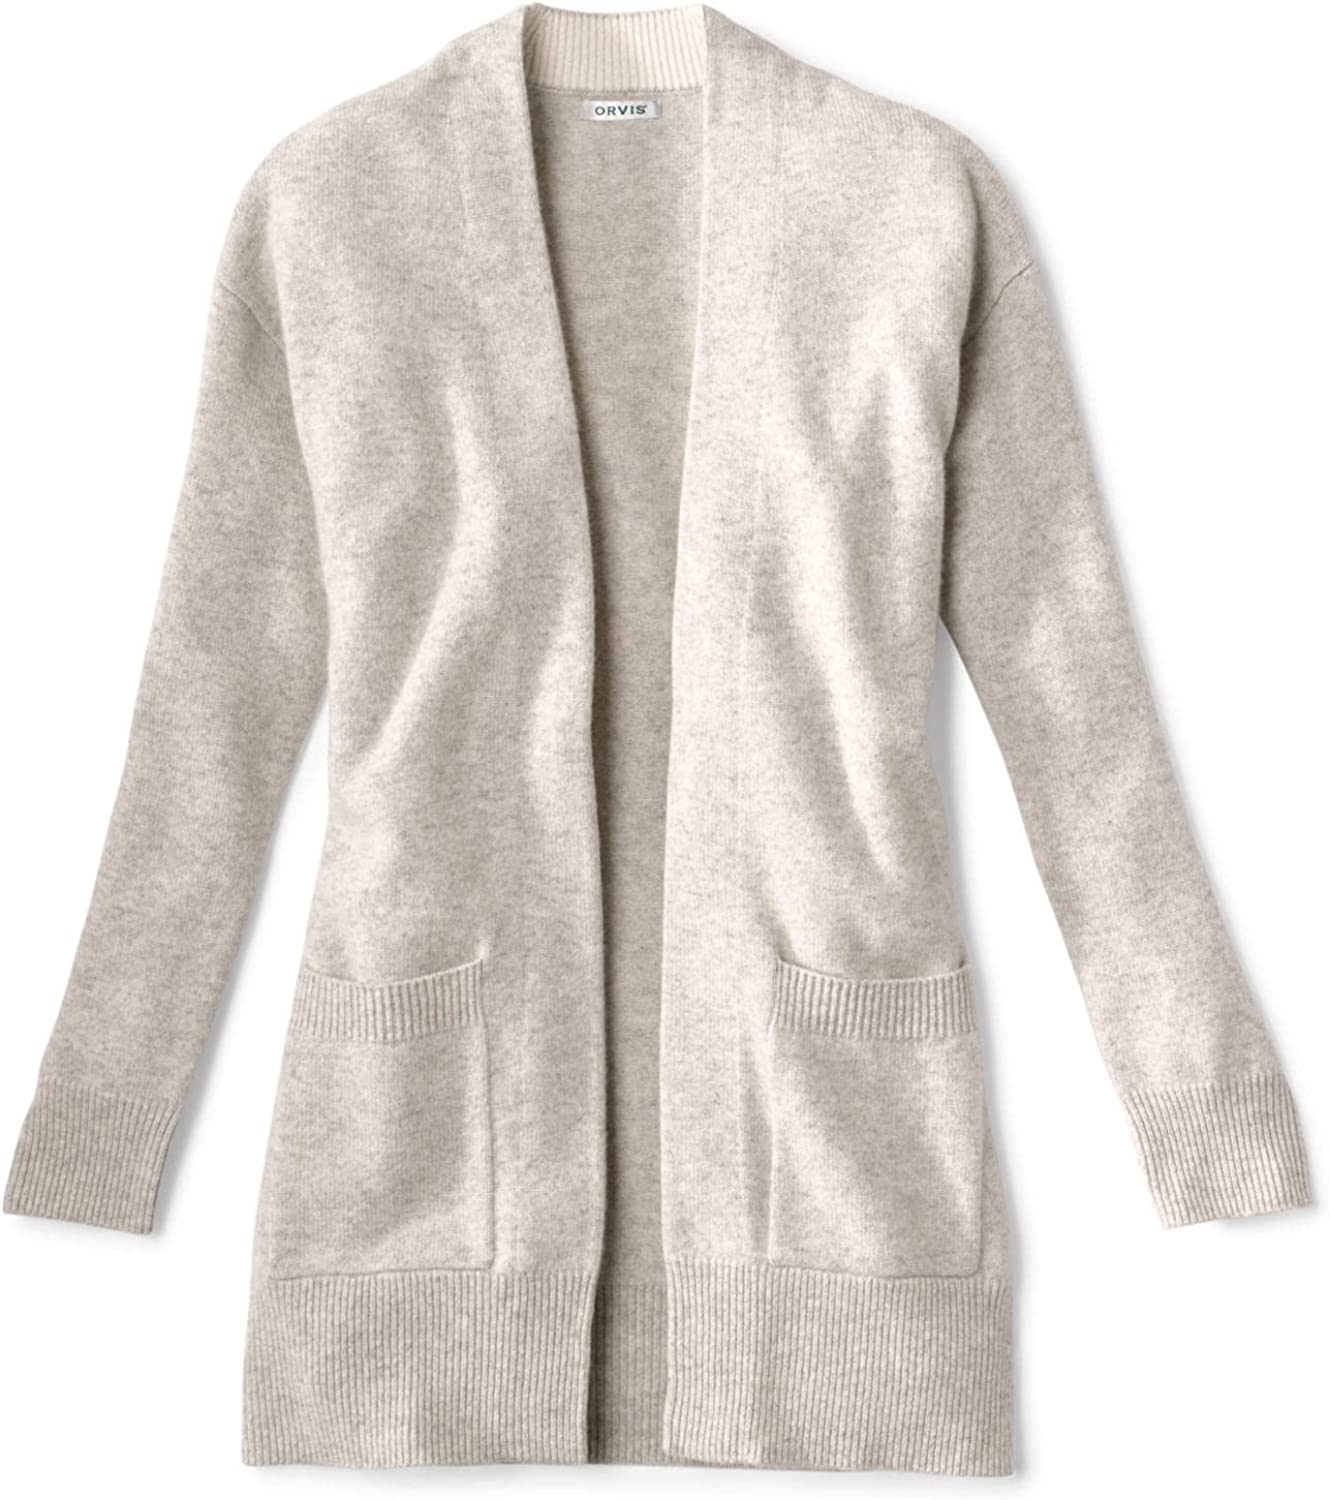 Orvis Women's Cashmere Open Front Cardigan Sweater